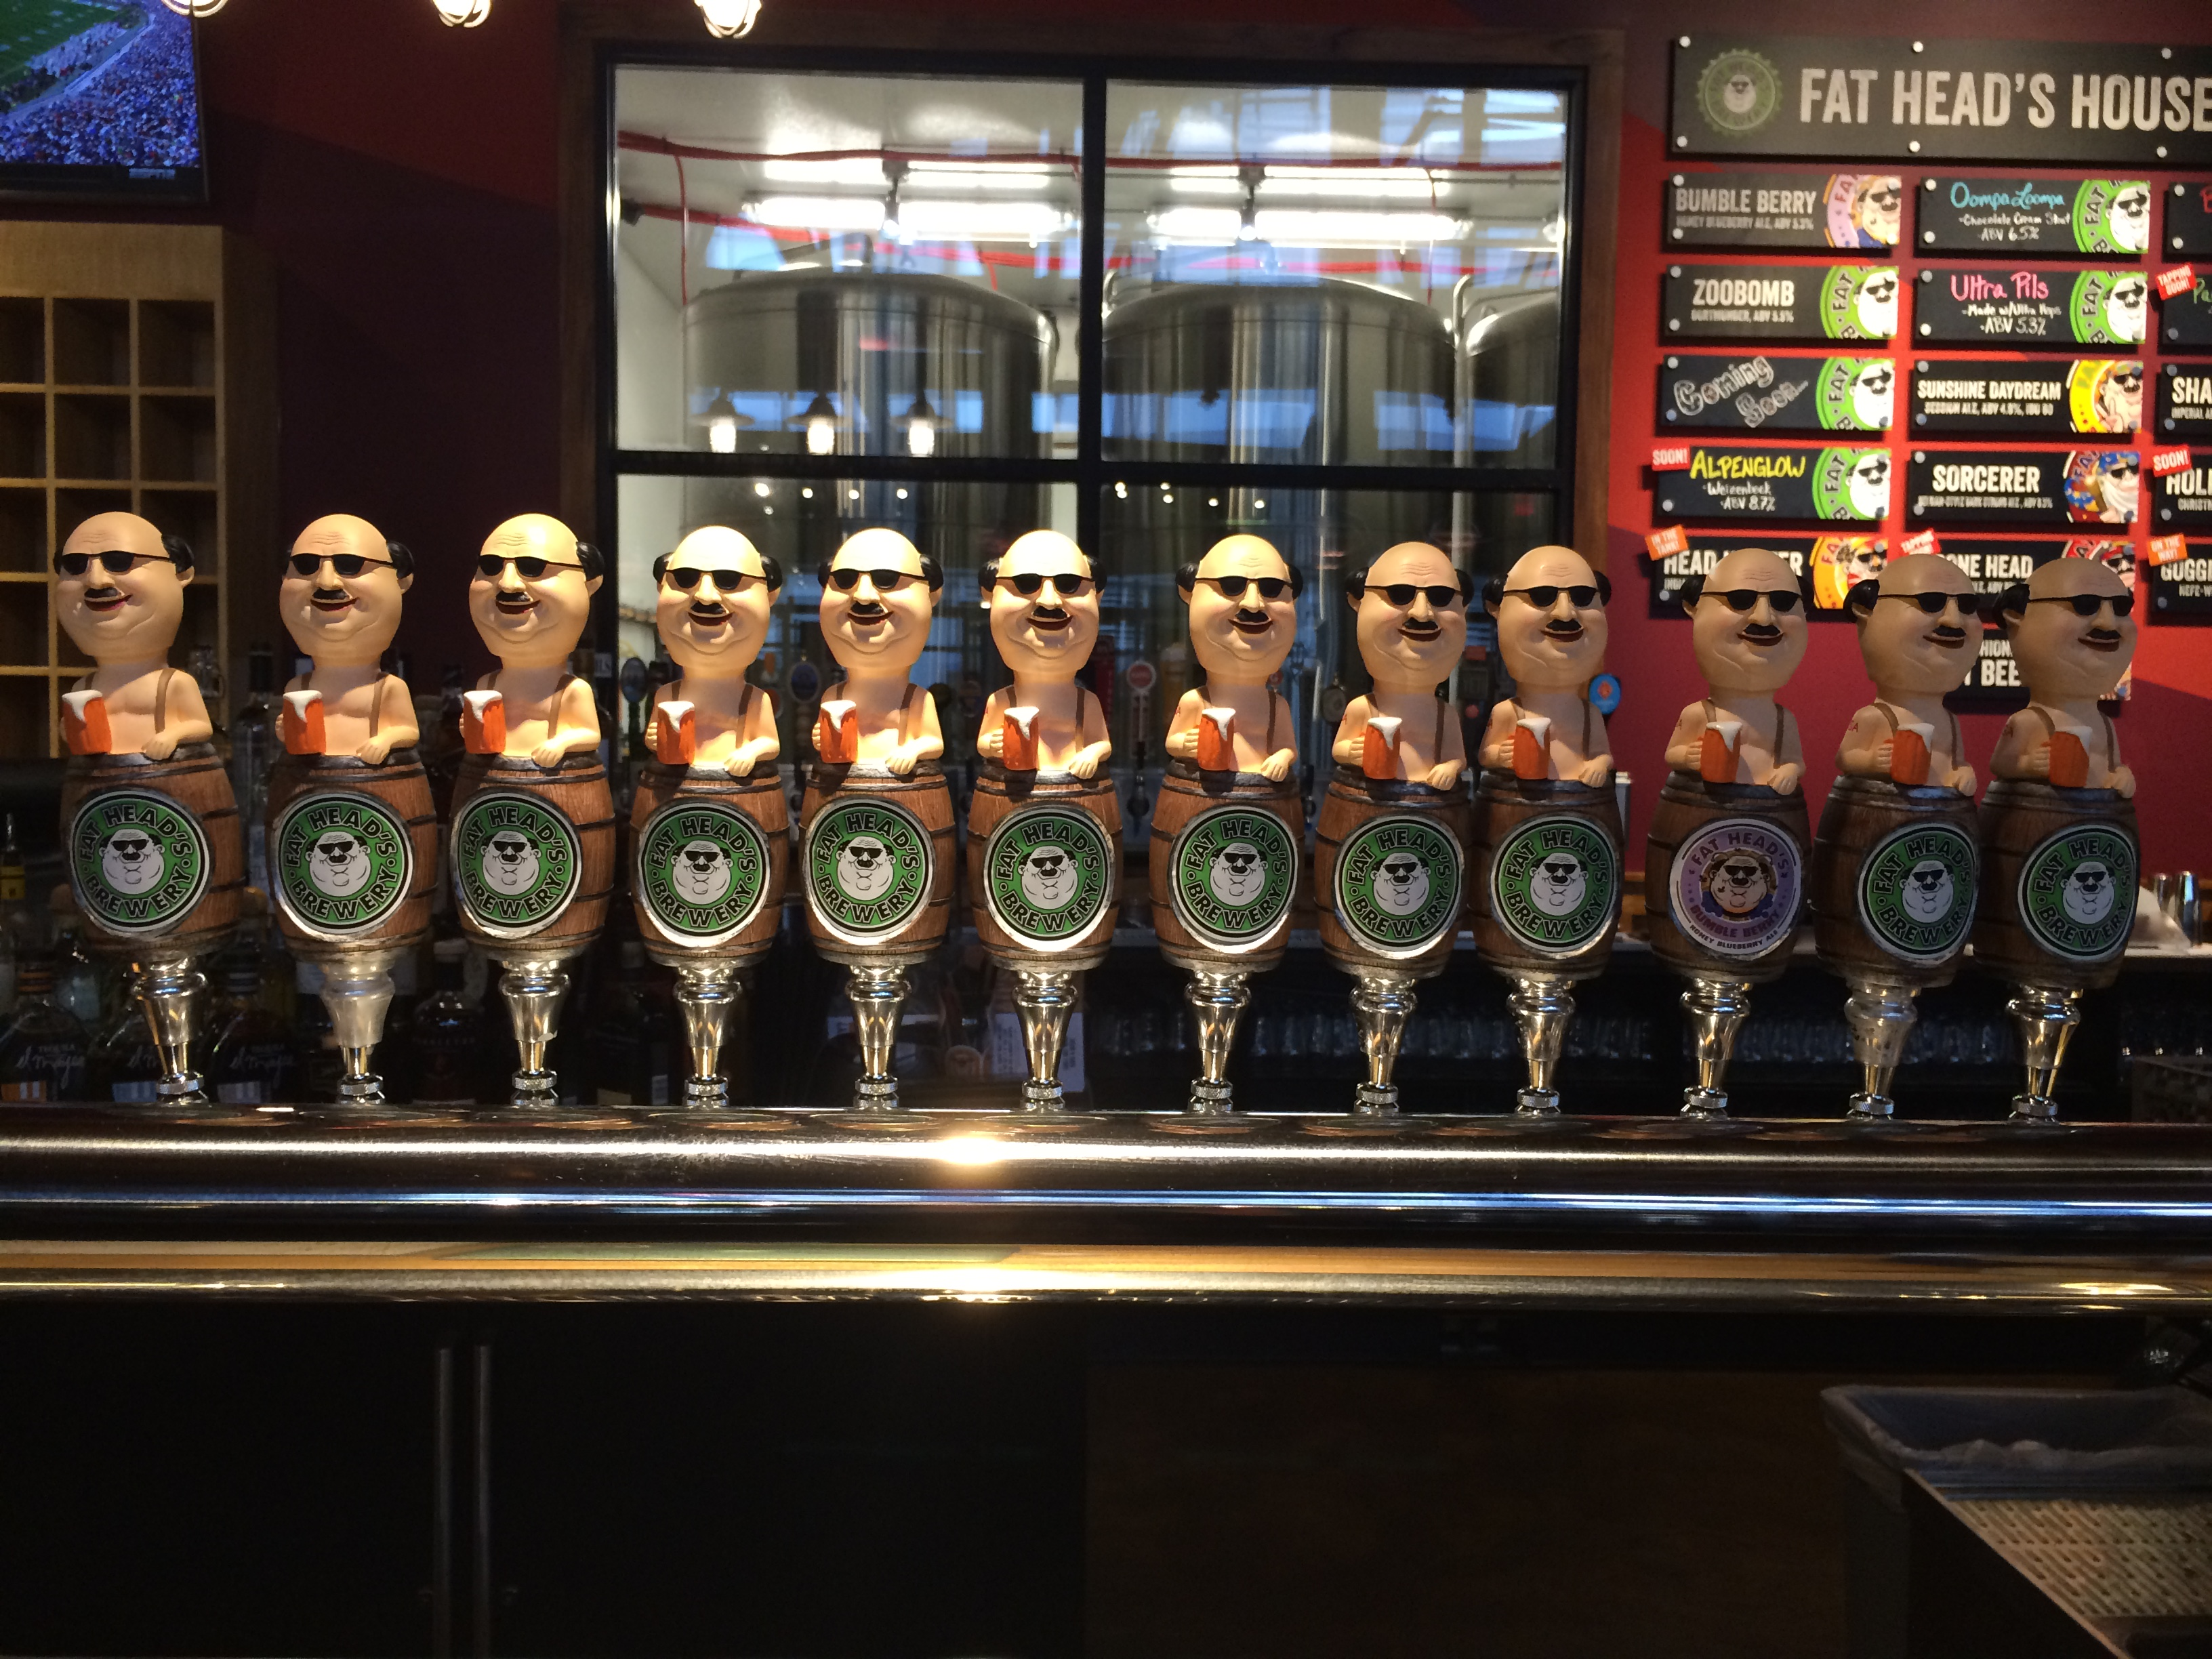 Fat Head's taphandles at the Fat Head's Brewery in Portland's Pearl District.